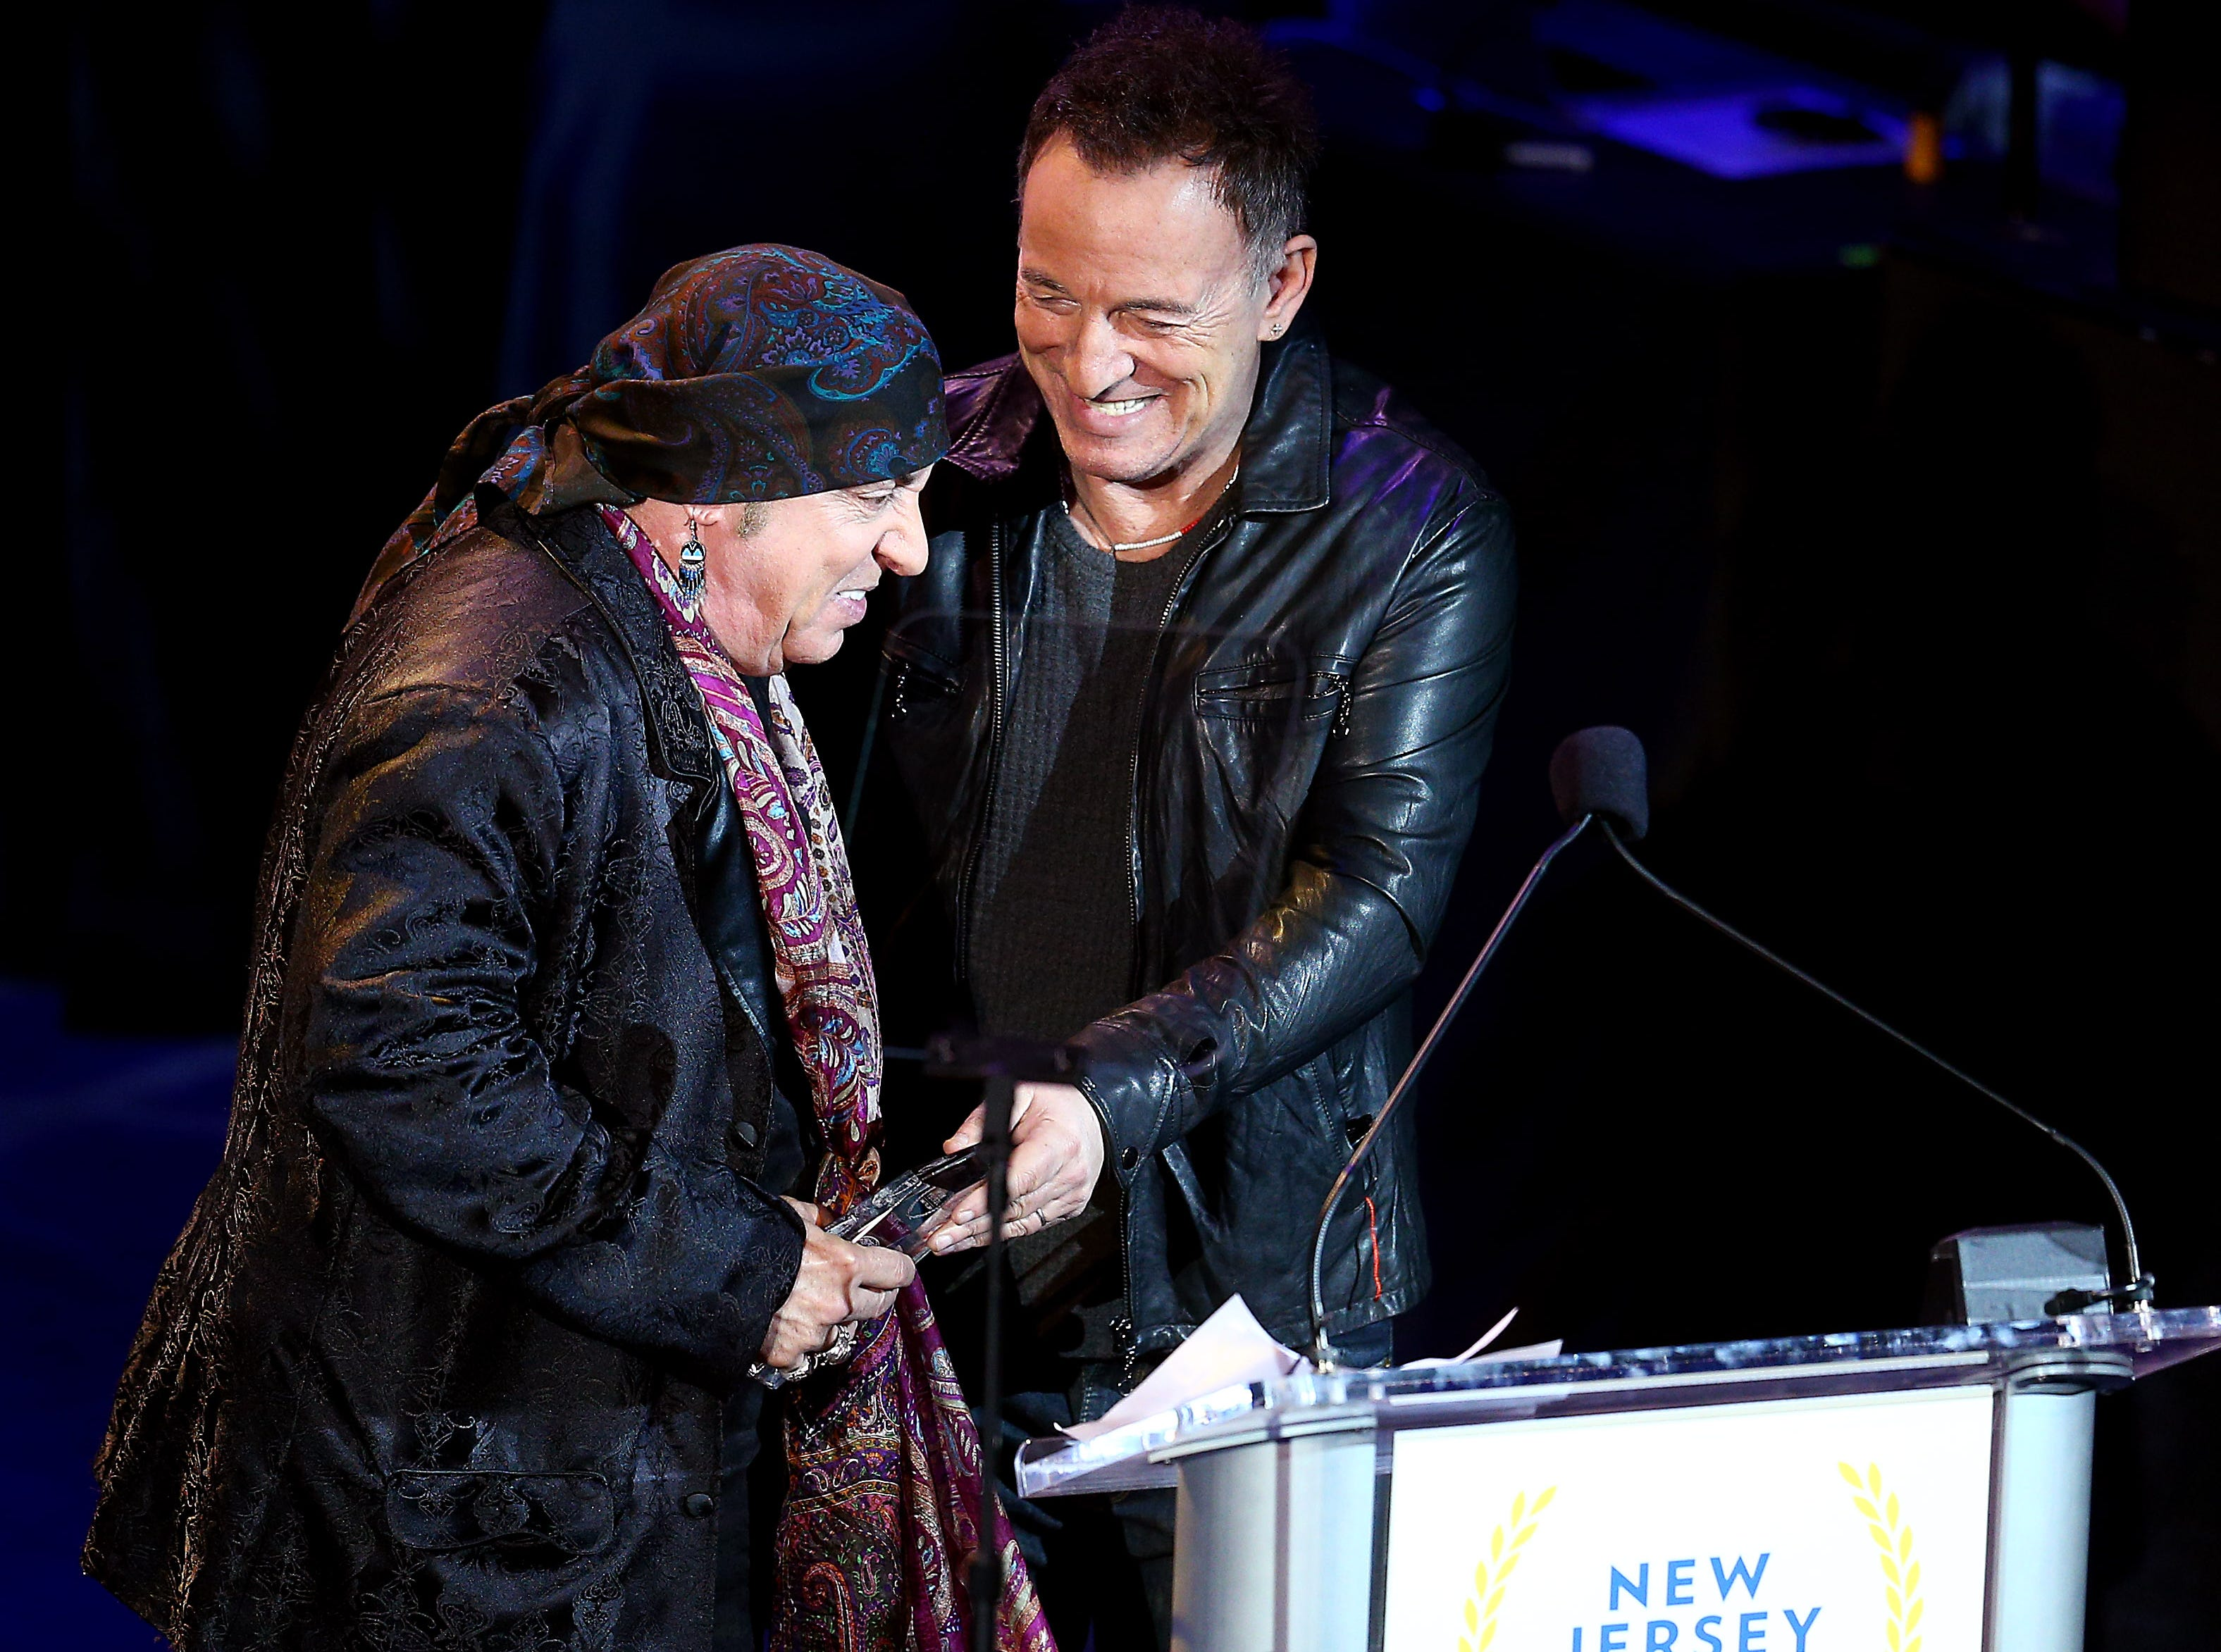 Musician and actor Steven Van Zandt receives his Performing Arts award from Bruce Springsteen during the 10th Anniversary Induction Ceremony of the New Jersey Hall of Fame at the Paramount Theater in Convention Hall, Asbury Park. May 6, 2018. Asbury Park, NJ